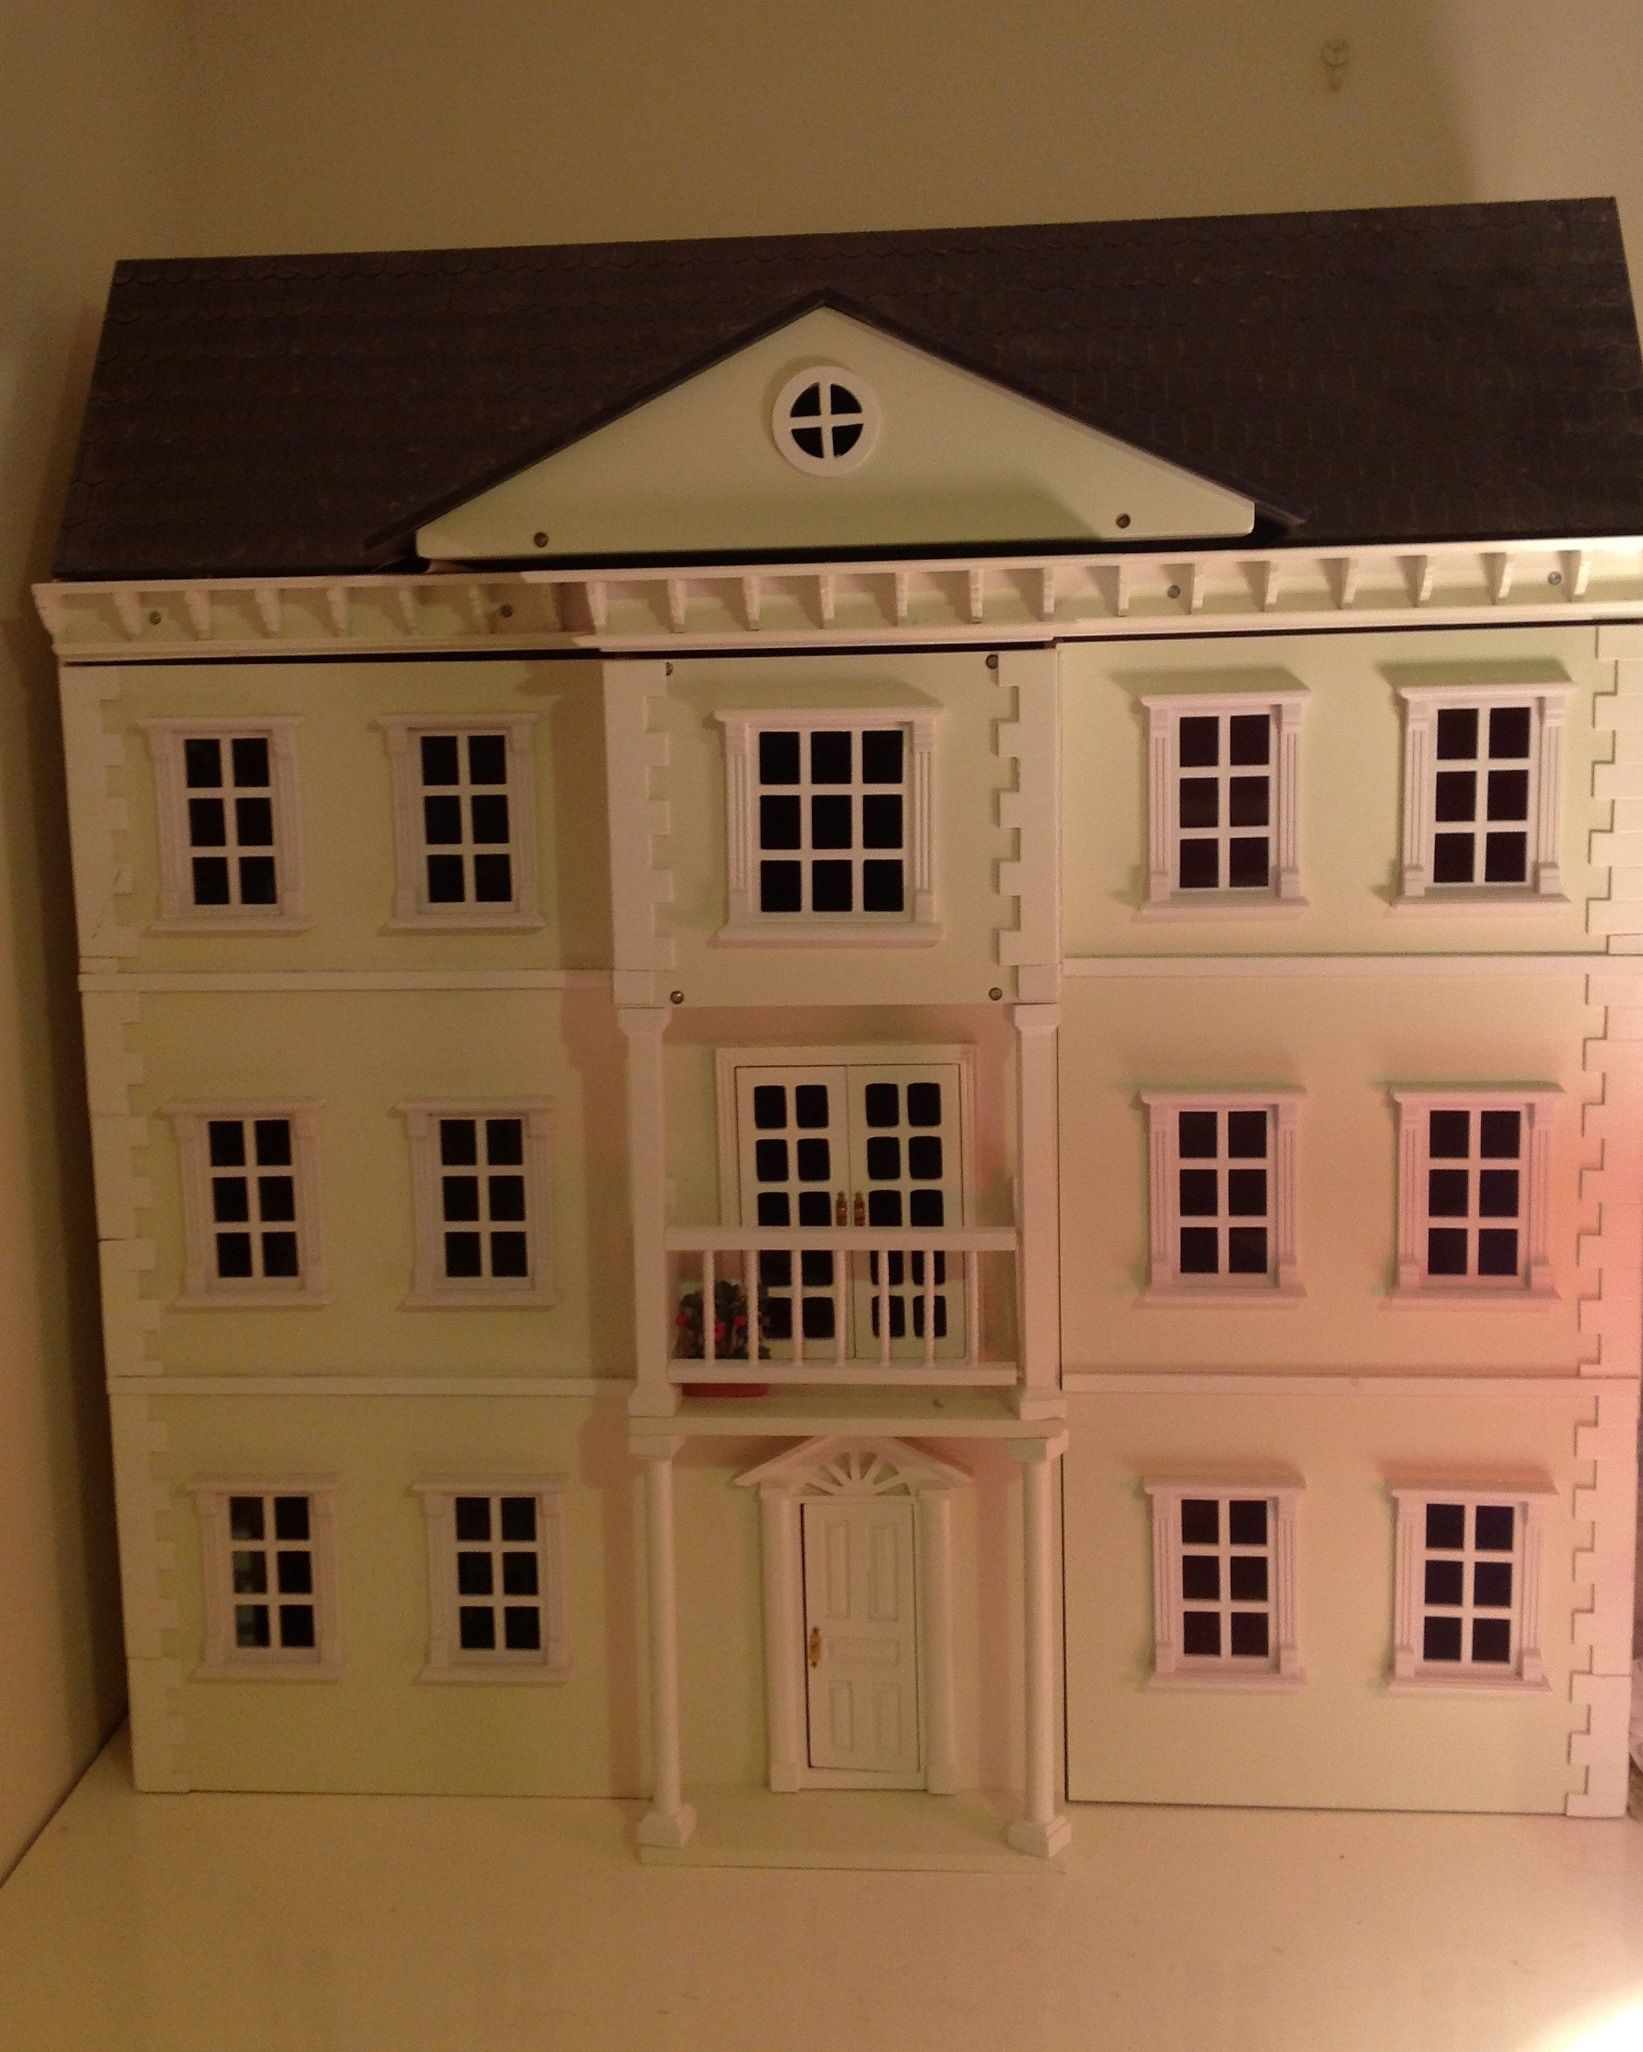 Mayfair dolls house, possibilities are endless!